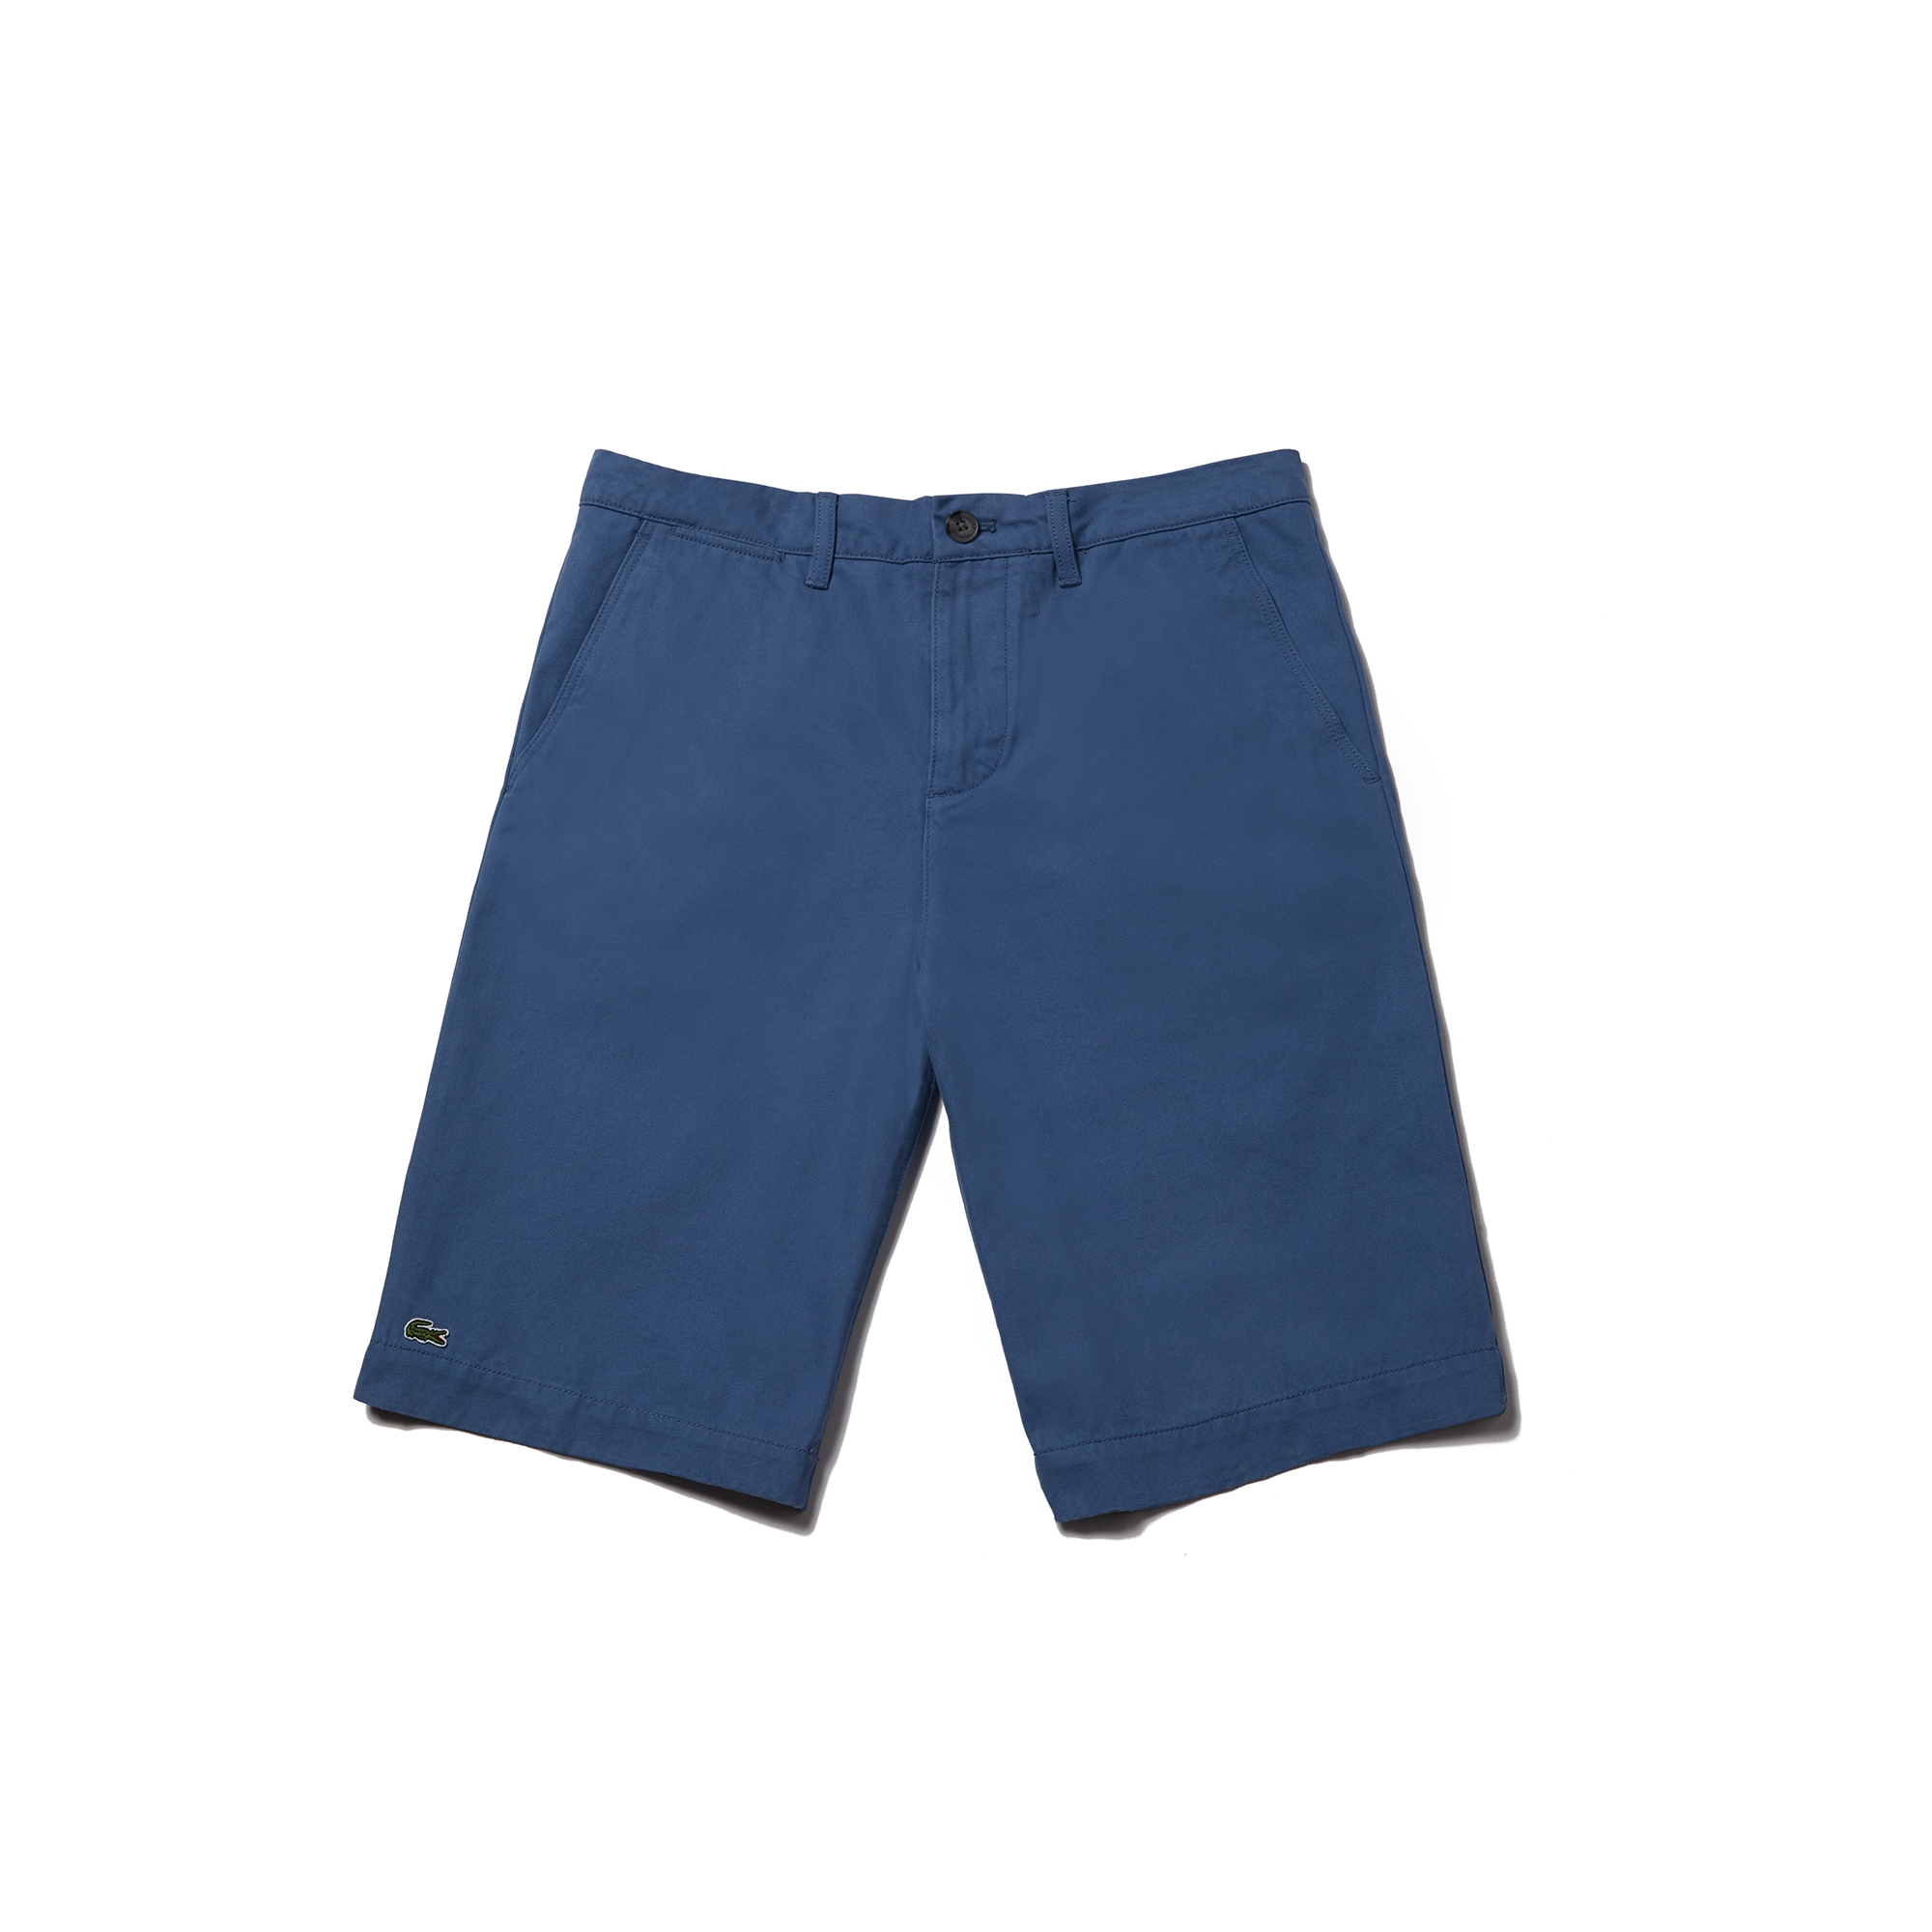 Men's Regular Fit Bermuda Shorts